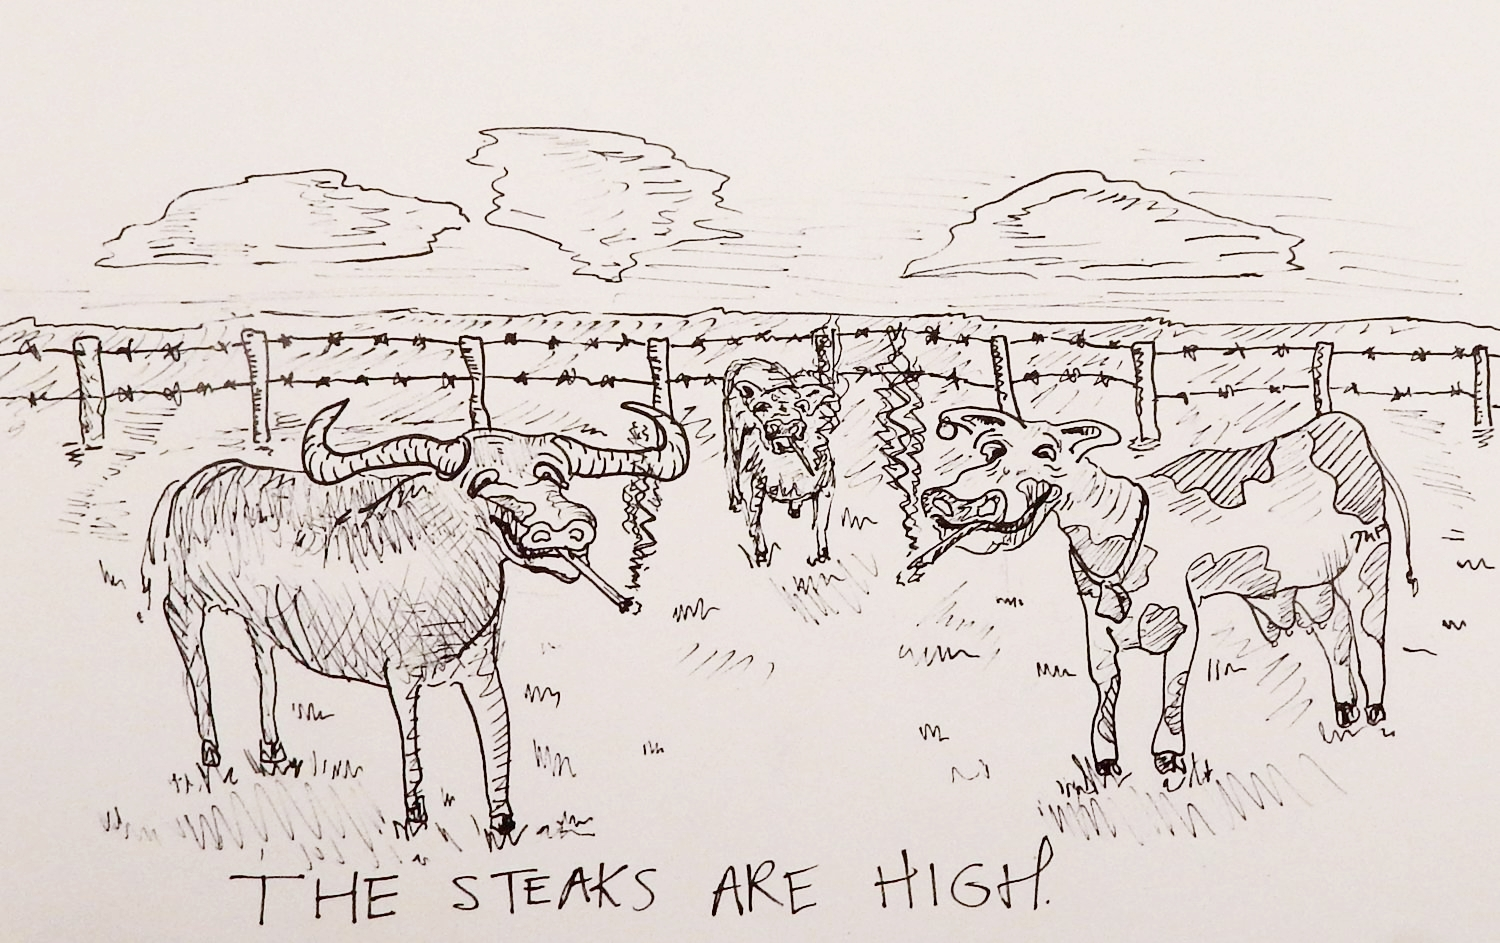 The Steaks are High